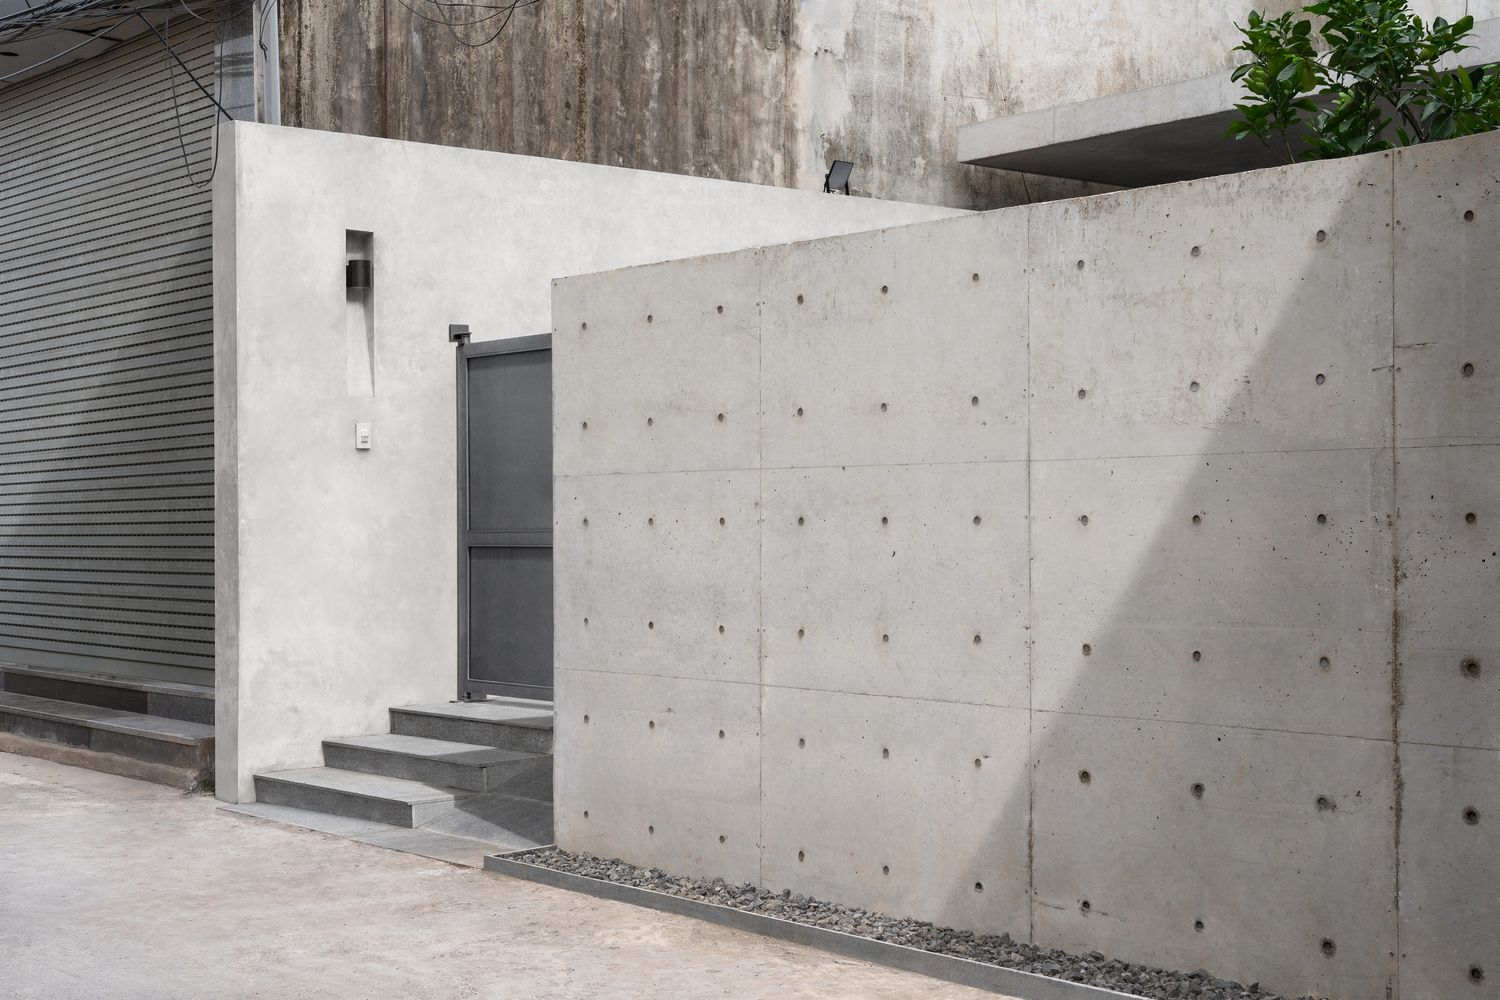 Gallery Of Duyen Ha House Nguyen Thanh Trung Architects 2 Architect Concrete Architecture Architecture